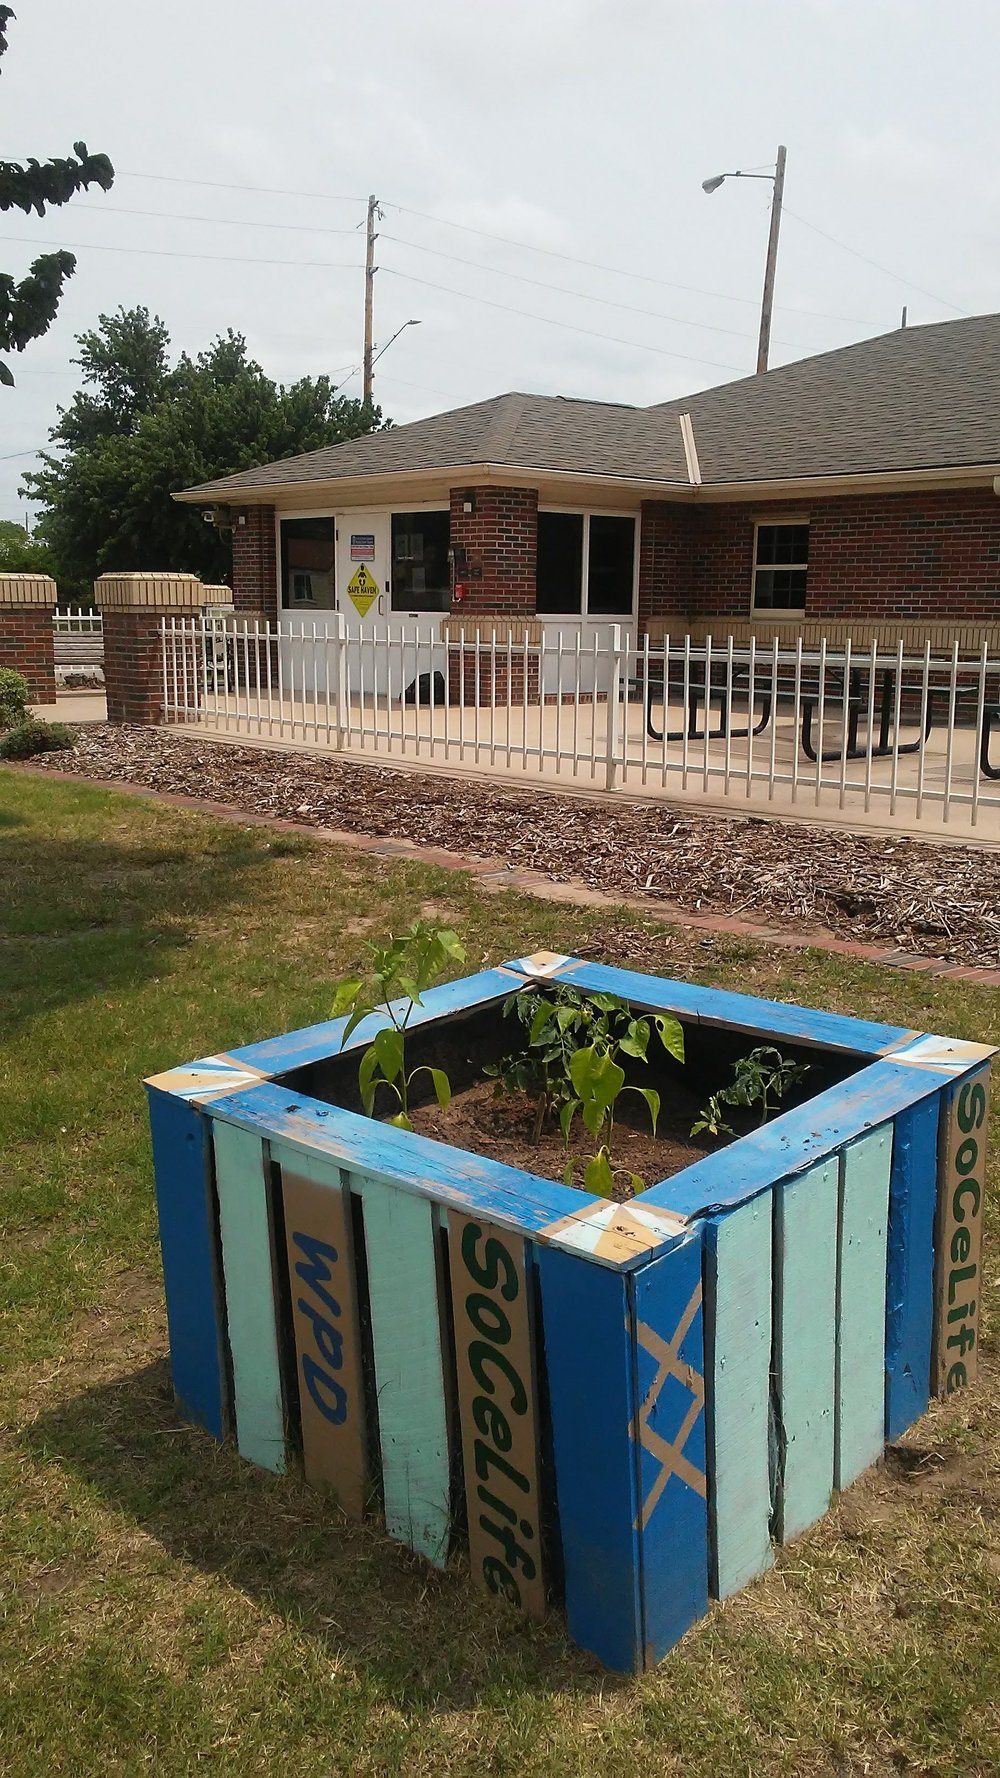 Year 2 for our garden box and the Patrol South Police Station